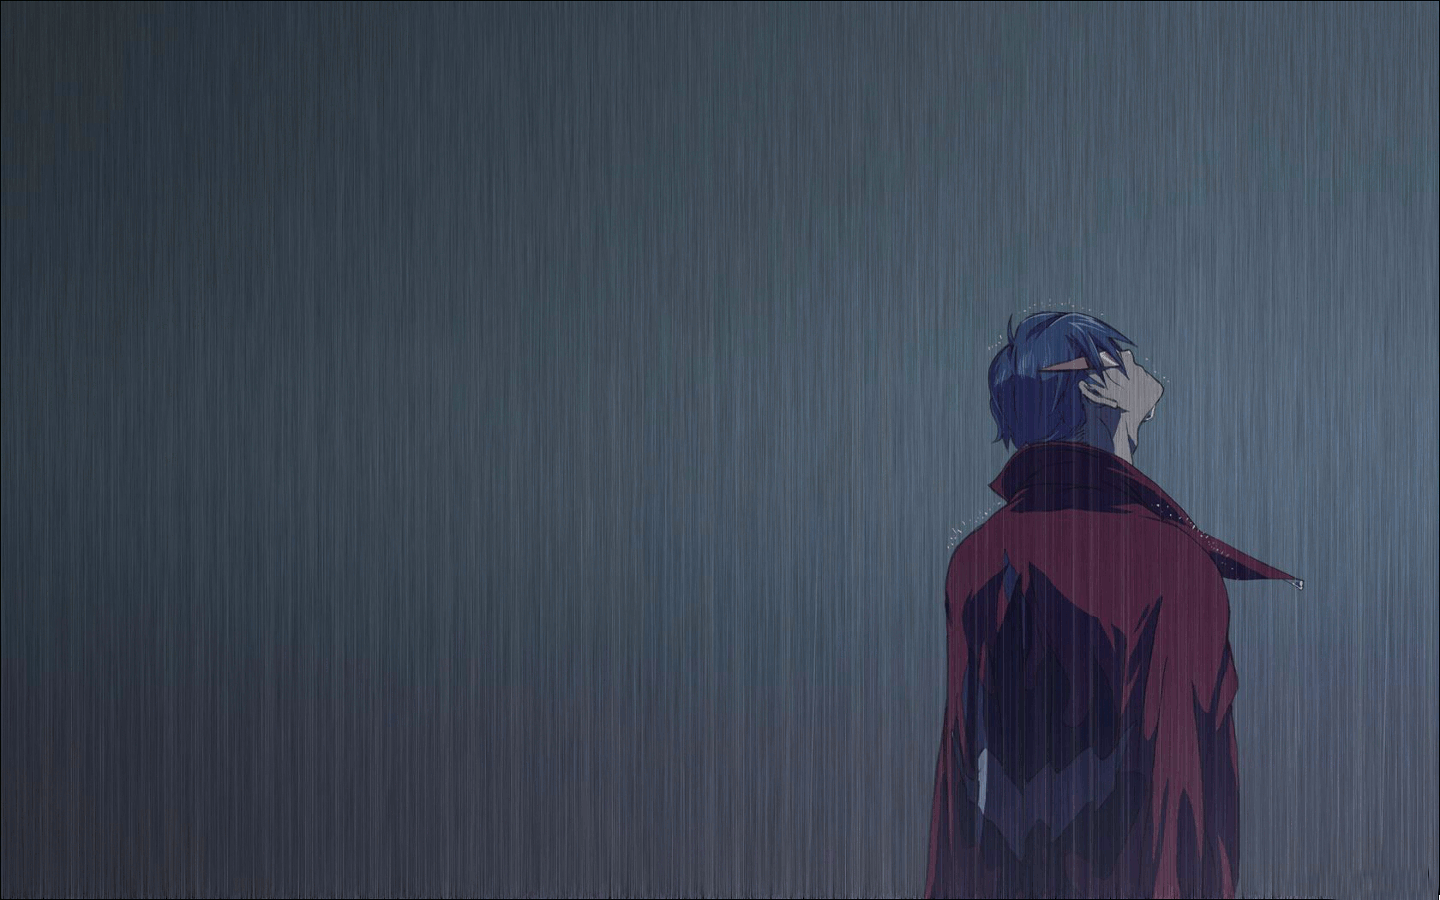 Sad Anime Wallpaper - WallpaperSafari